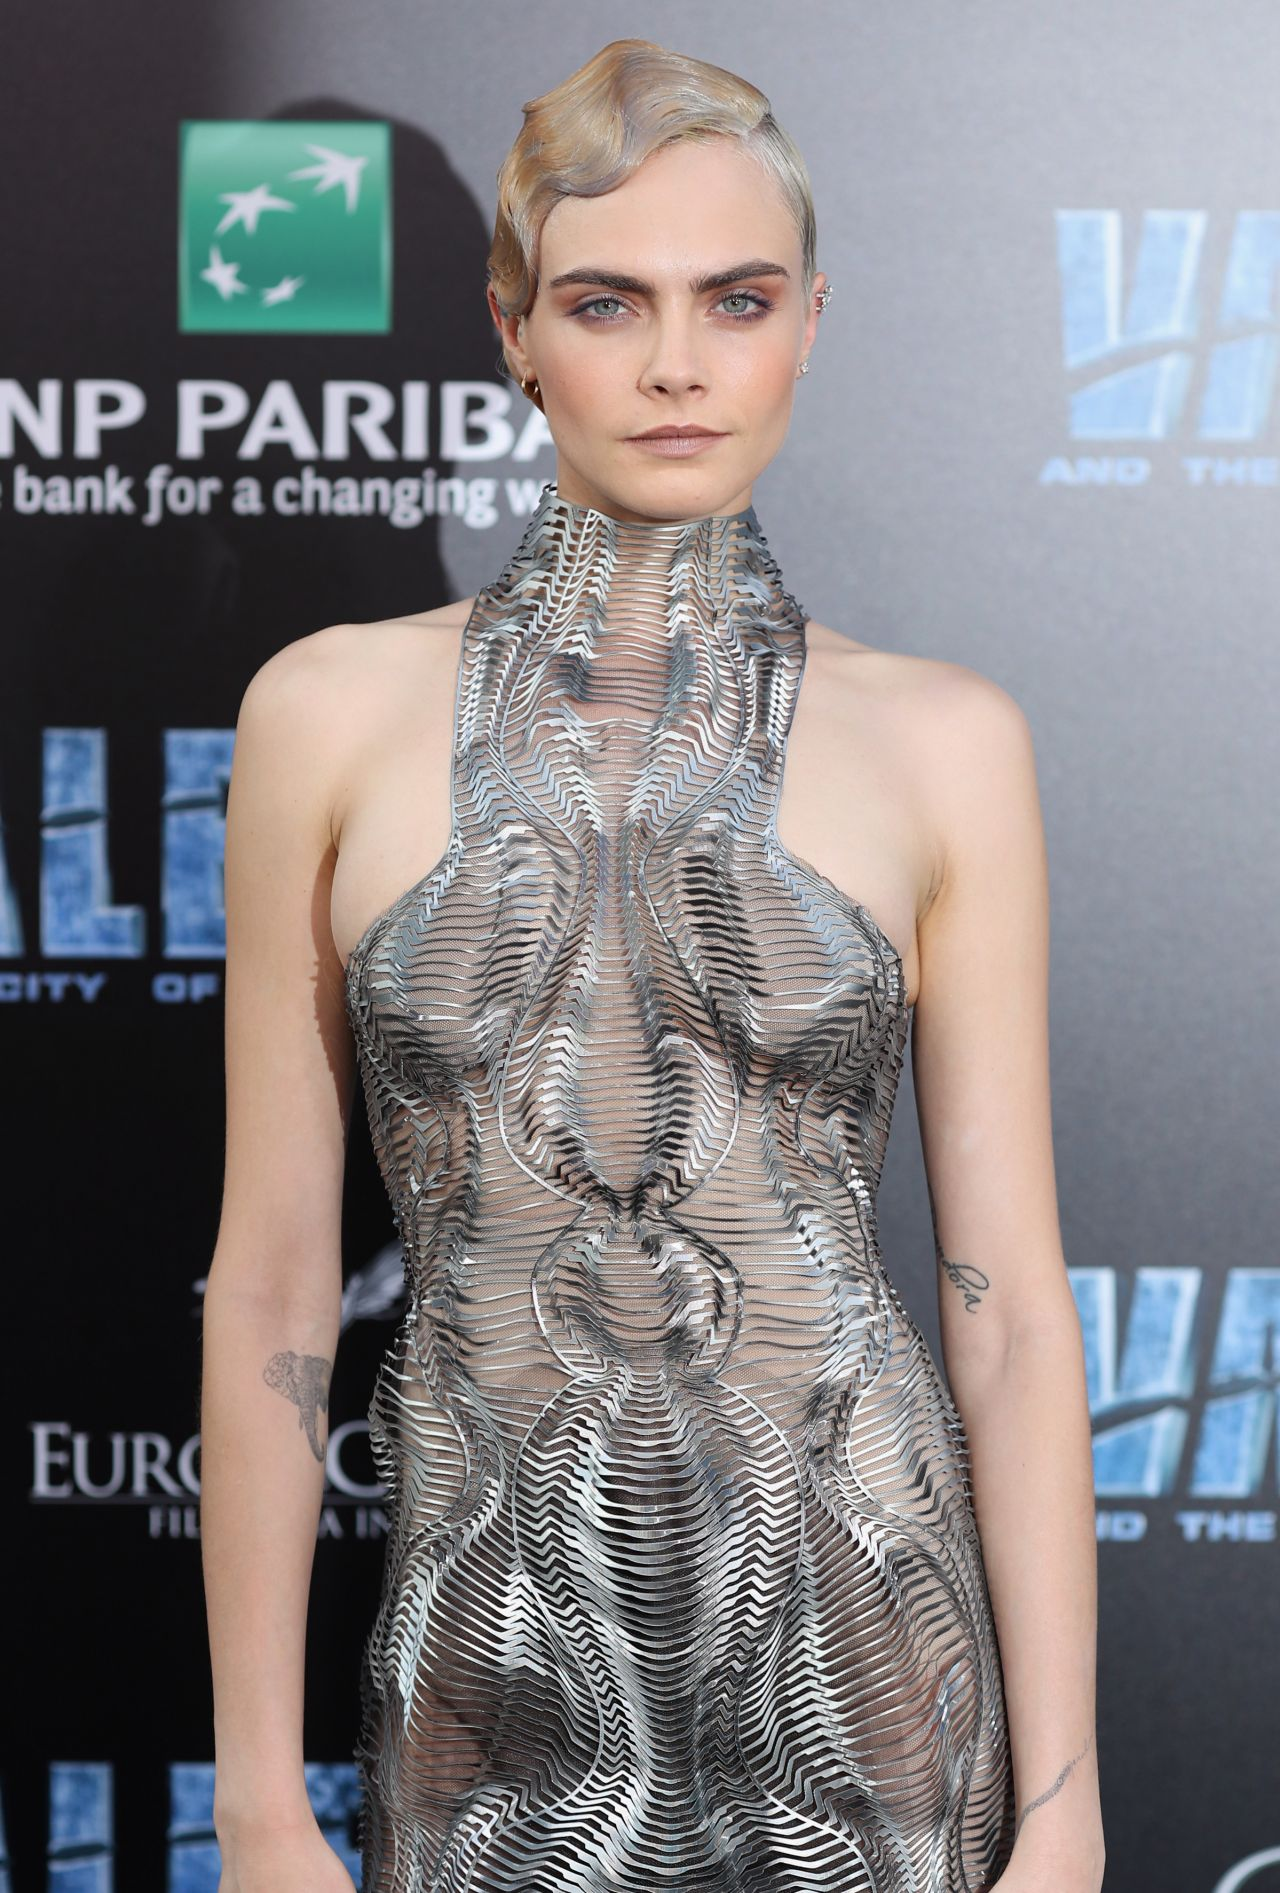 cara-delevingne-valerian-and-the-city-of-a-thousand-planets-premiere-in-hollywood-07-17-2017-10